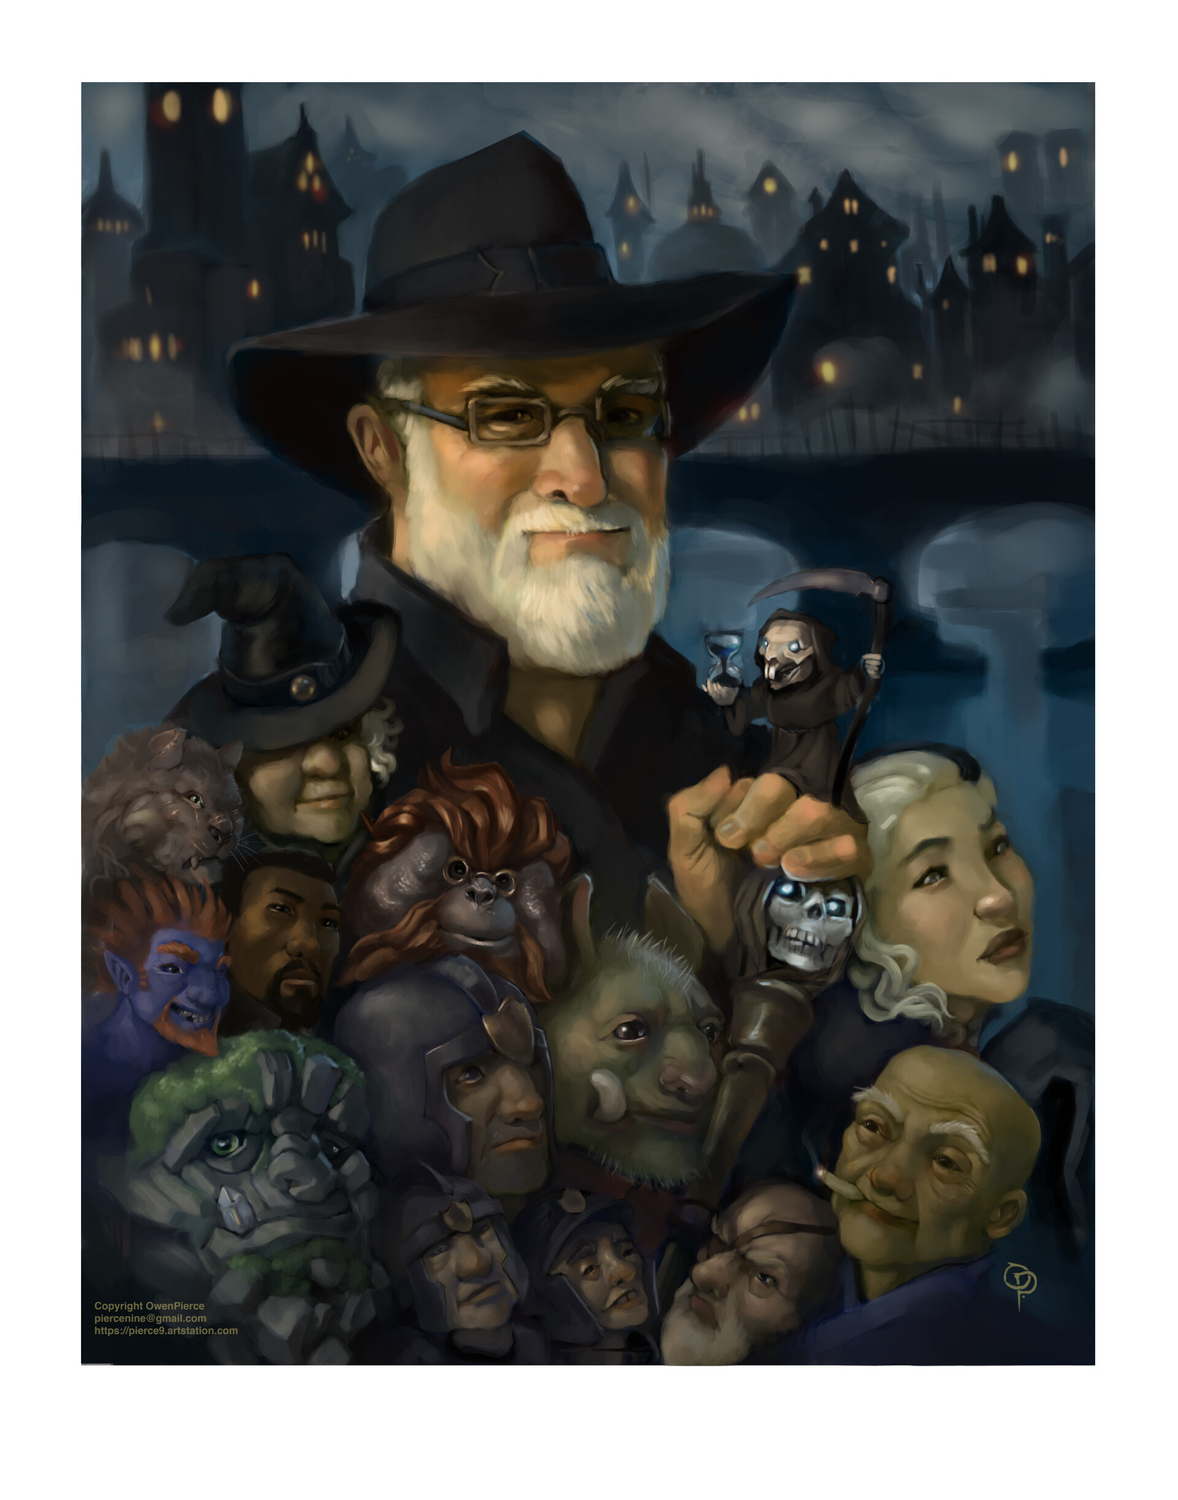 Terry Pratchett Tribute Artwork by owen pierce